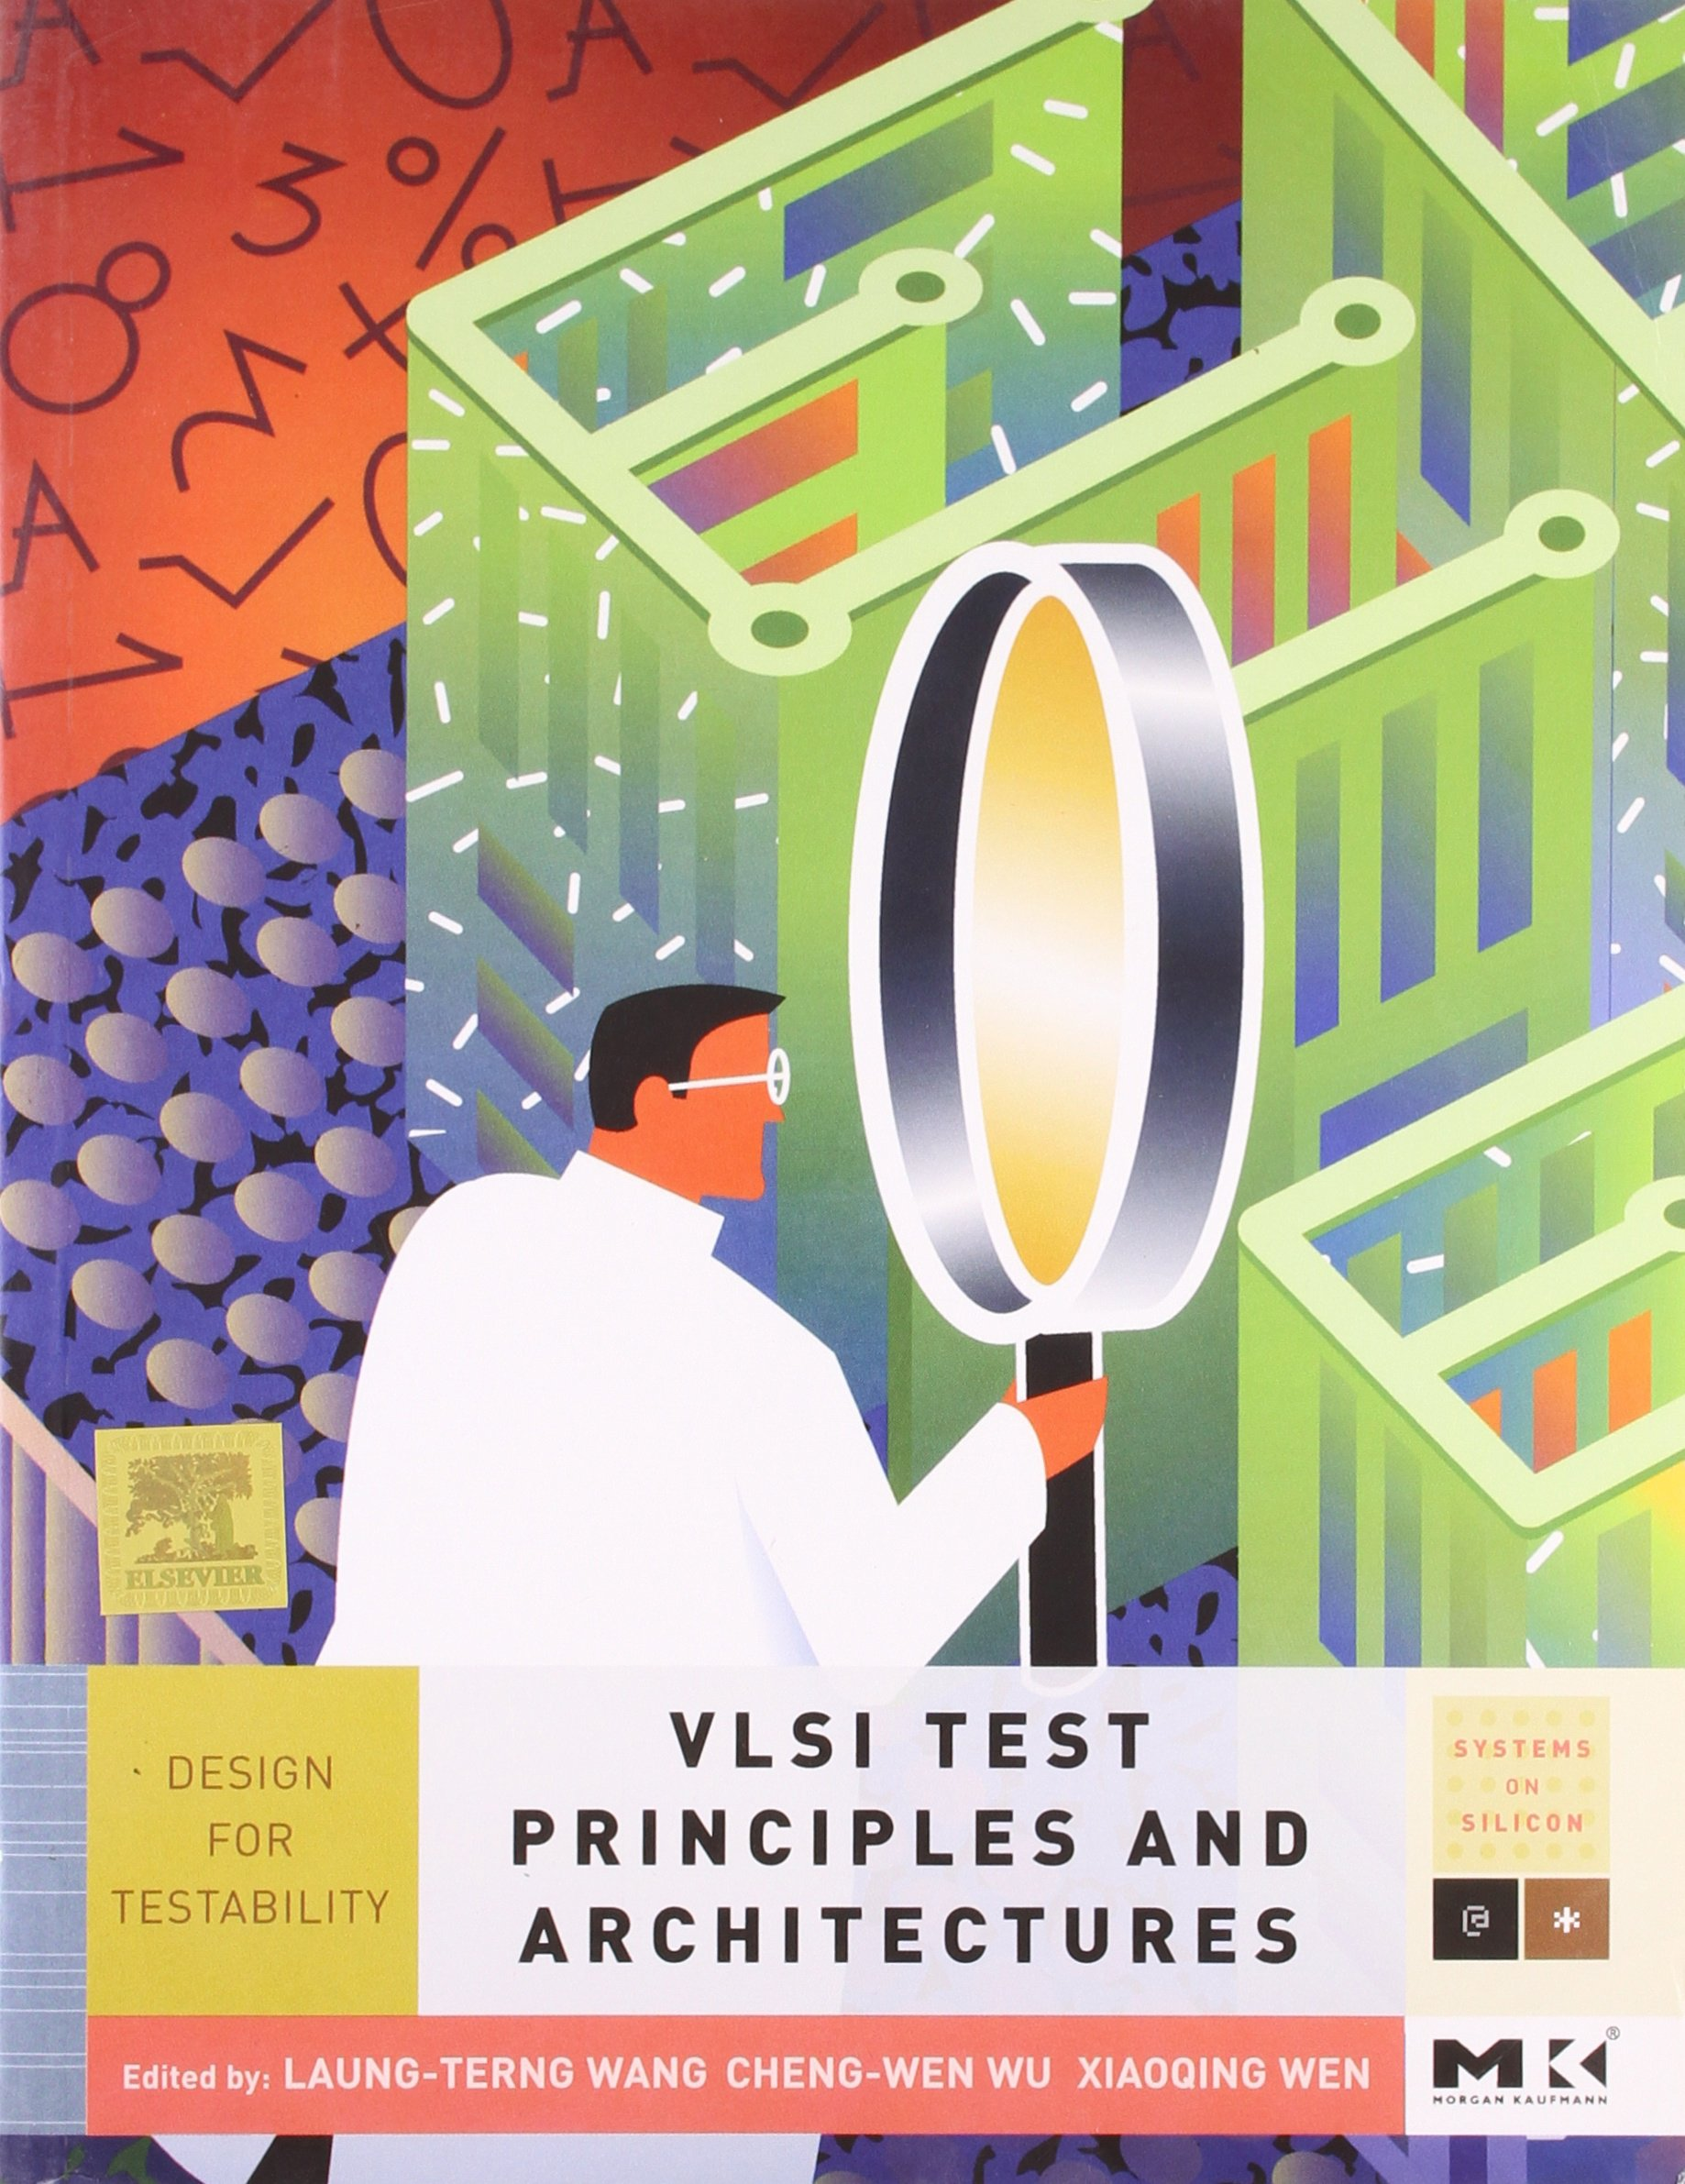 Vlsi Test Principles And Architectures Design For Testability Epub Download